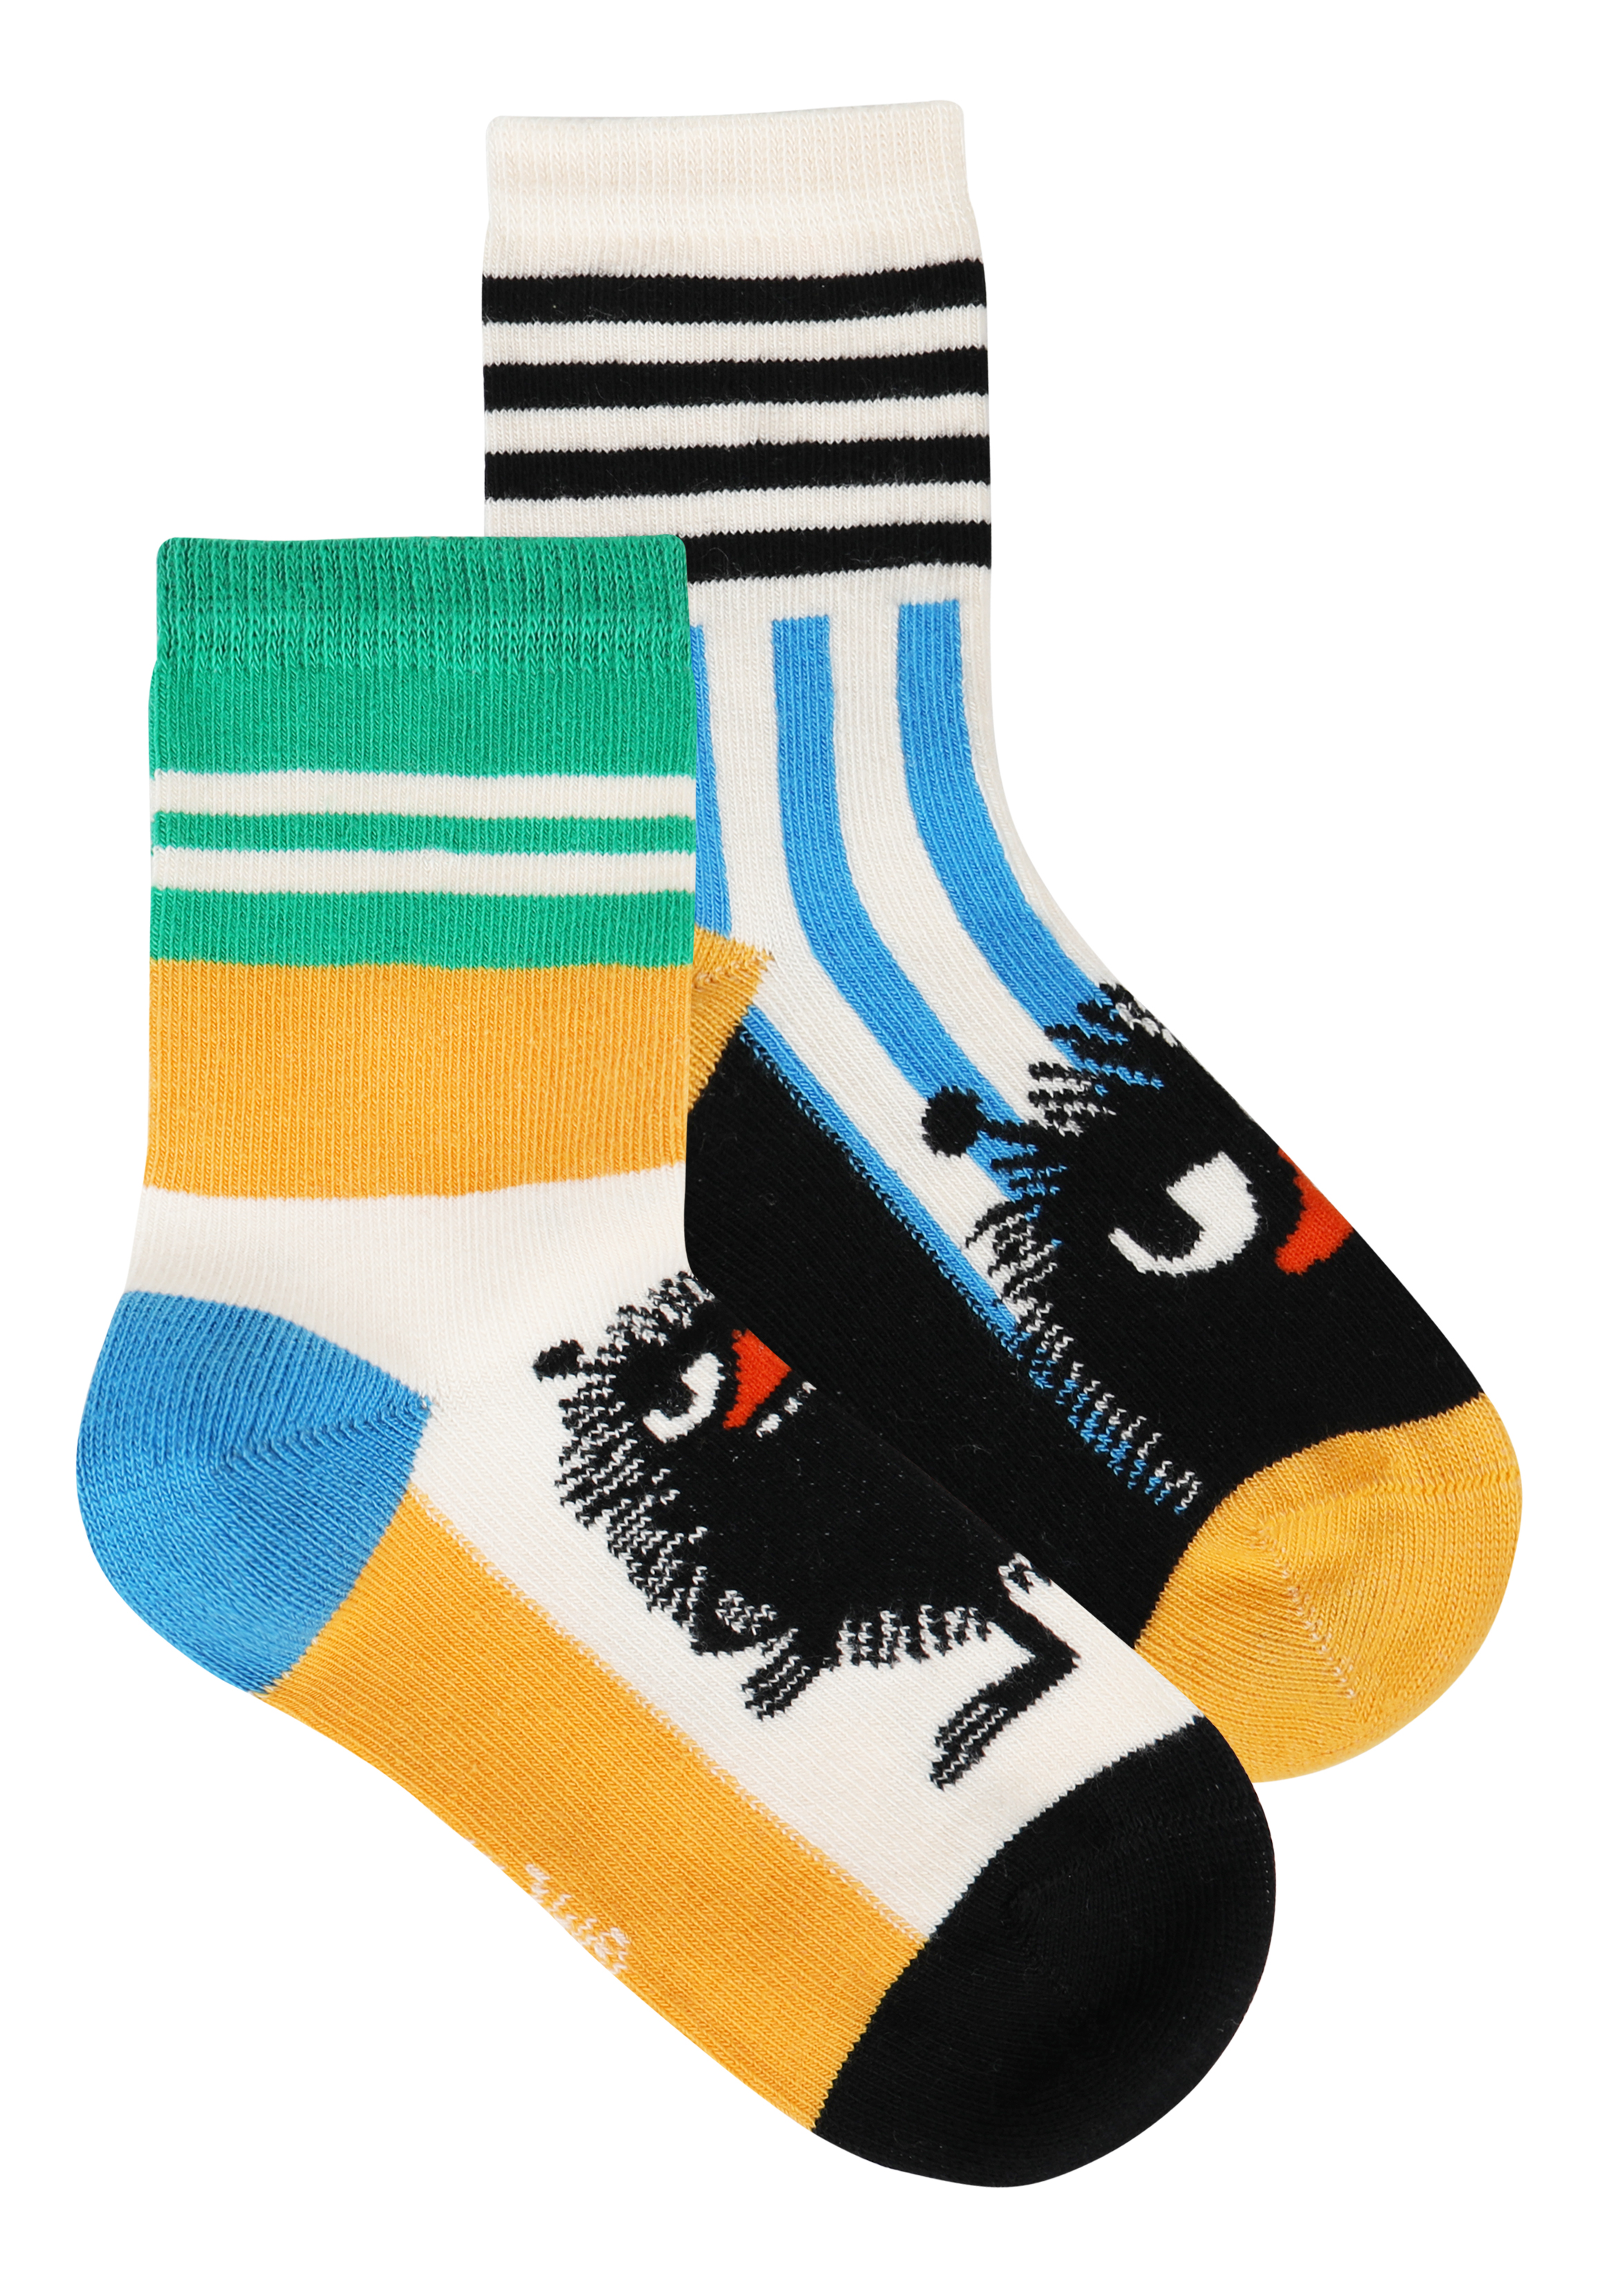 Martinex Moomin Stinky Socks 2-pack White